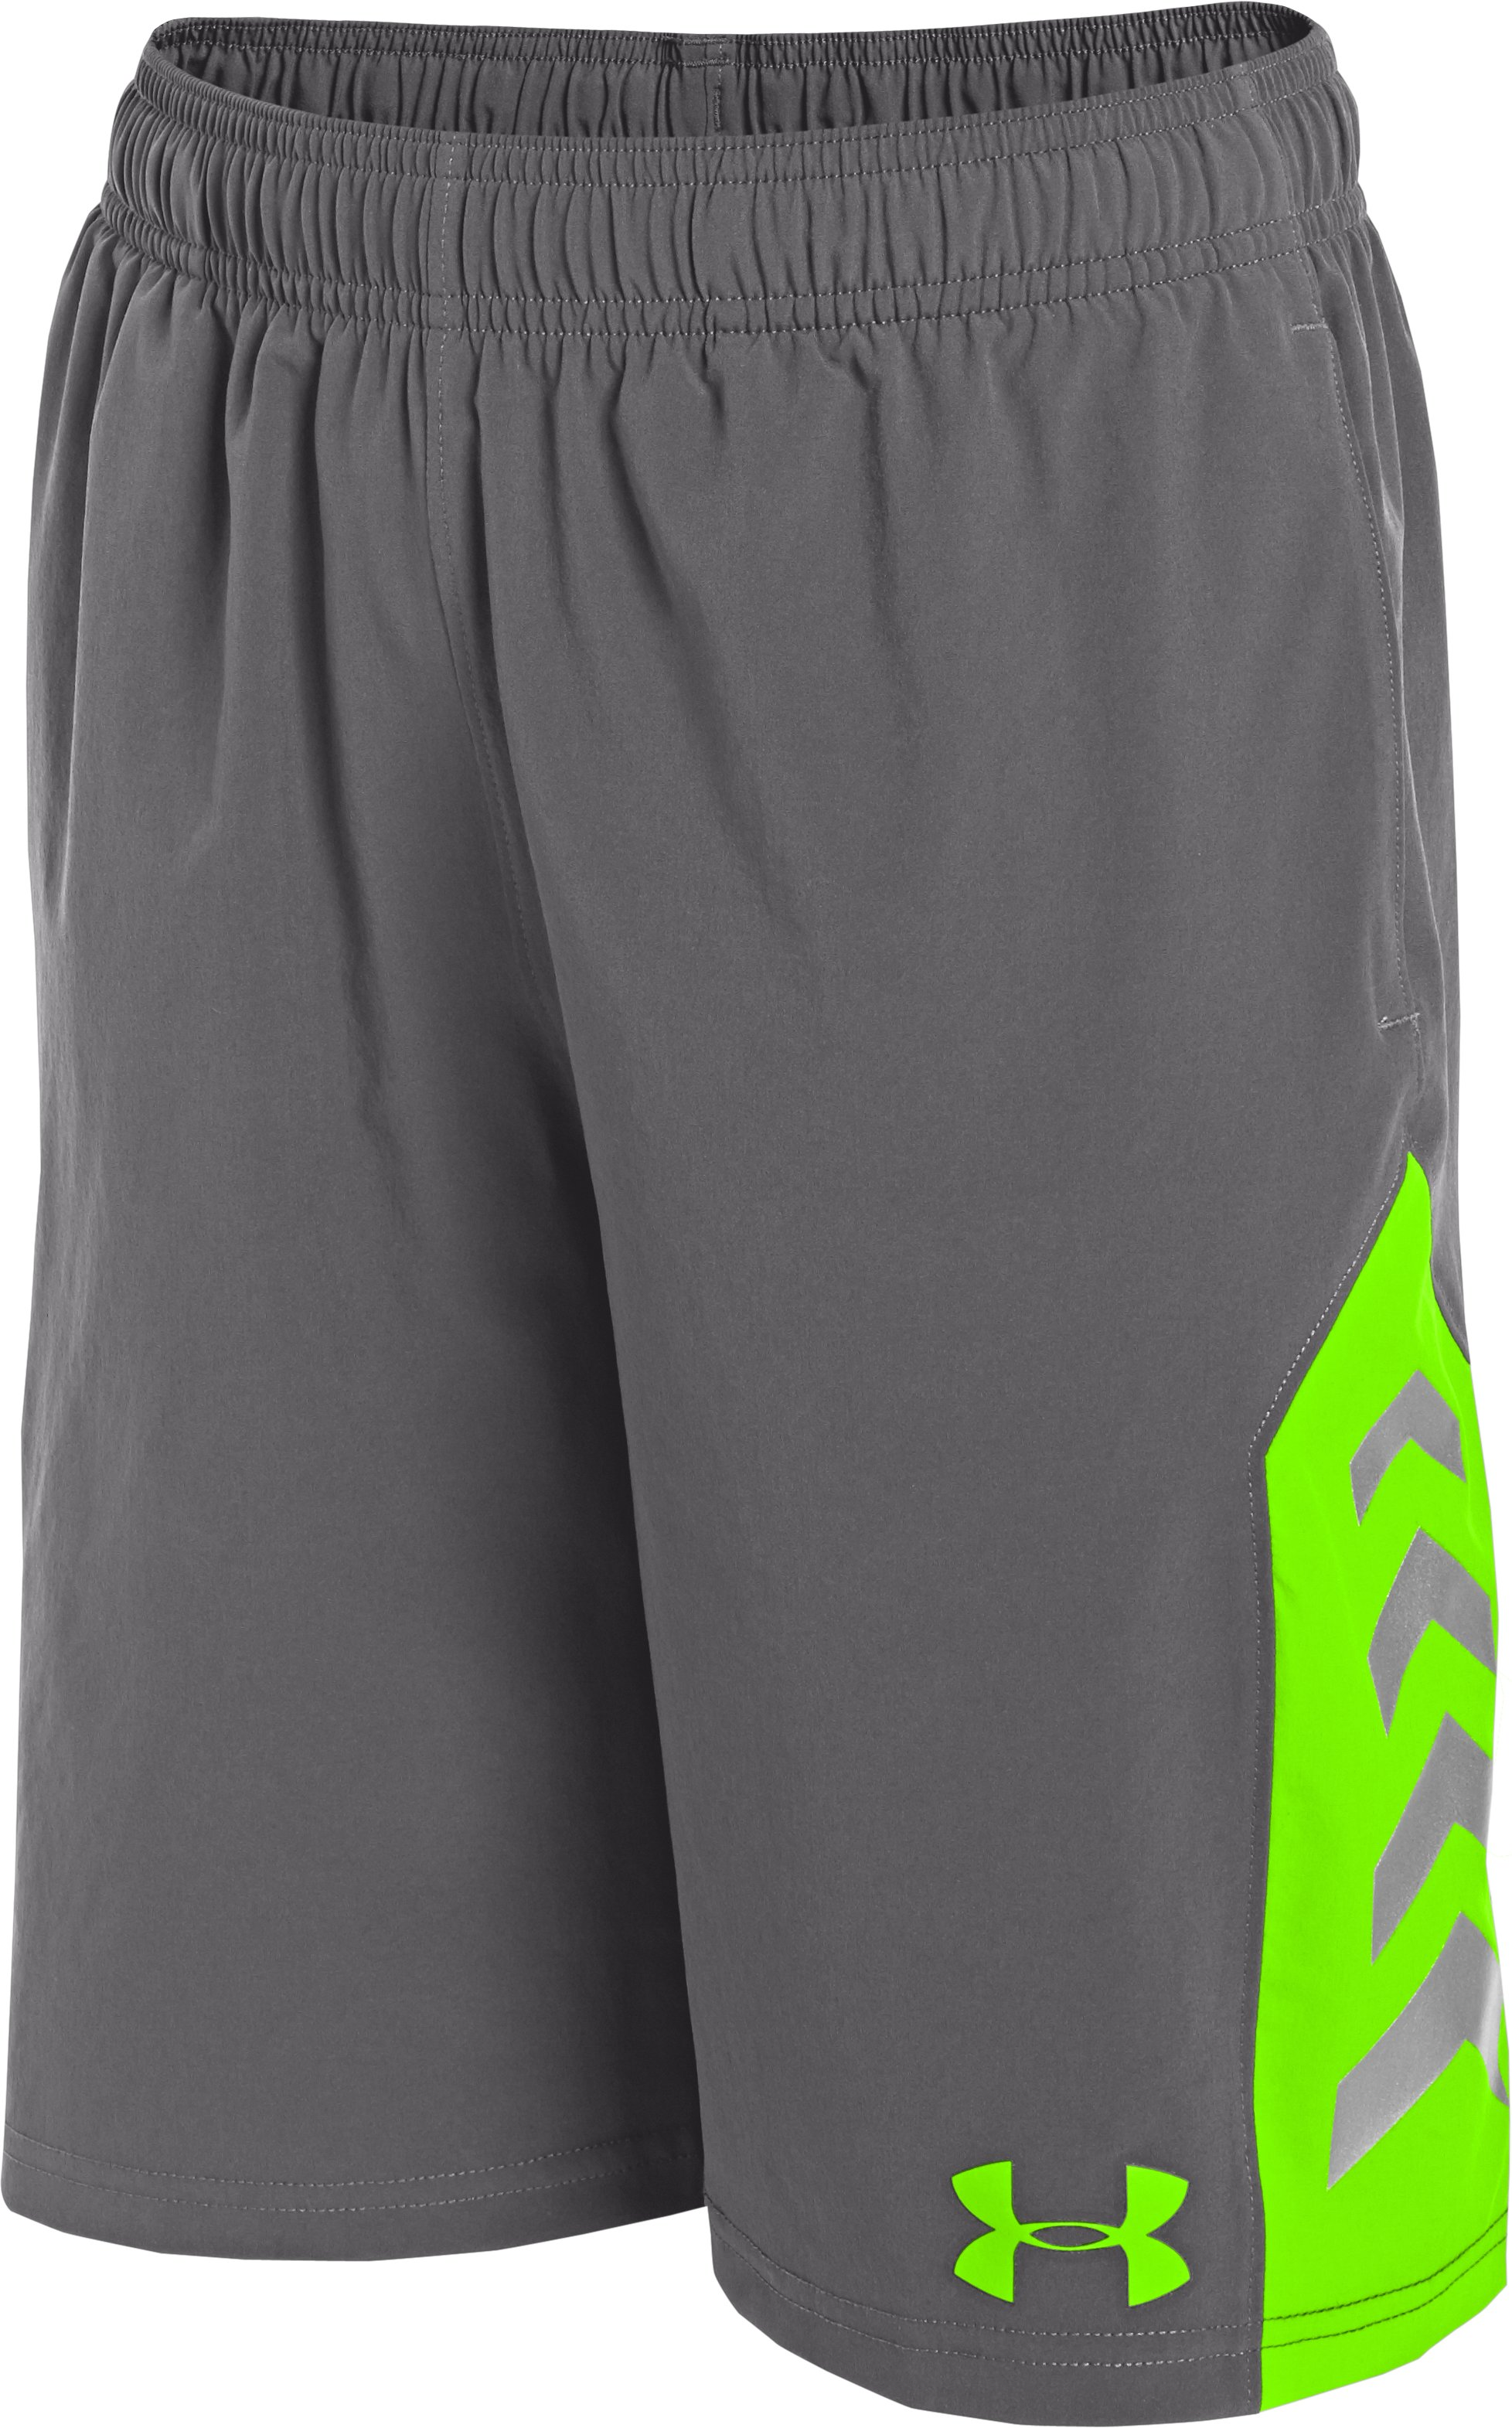 Boys' NFL Combine Authentic Shorts, Graphite